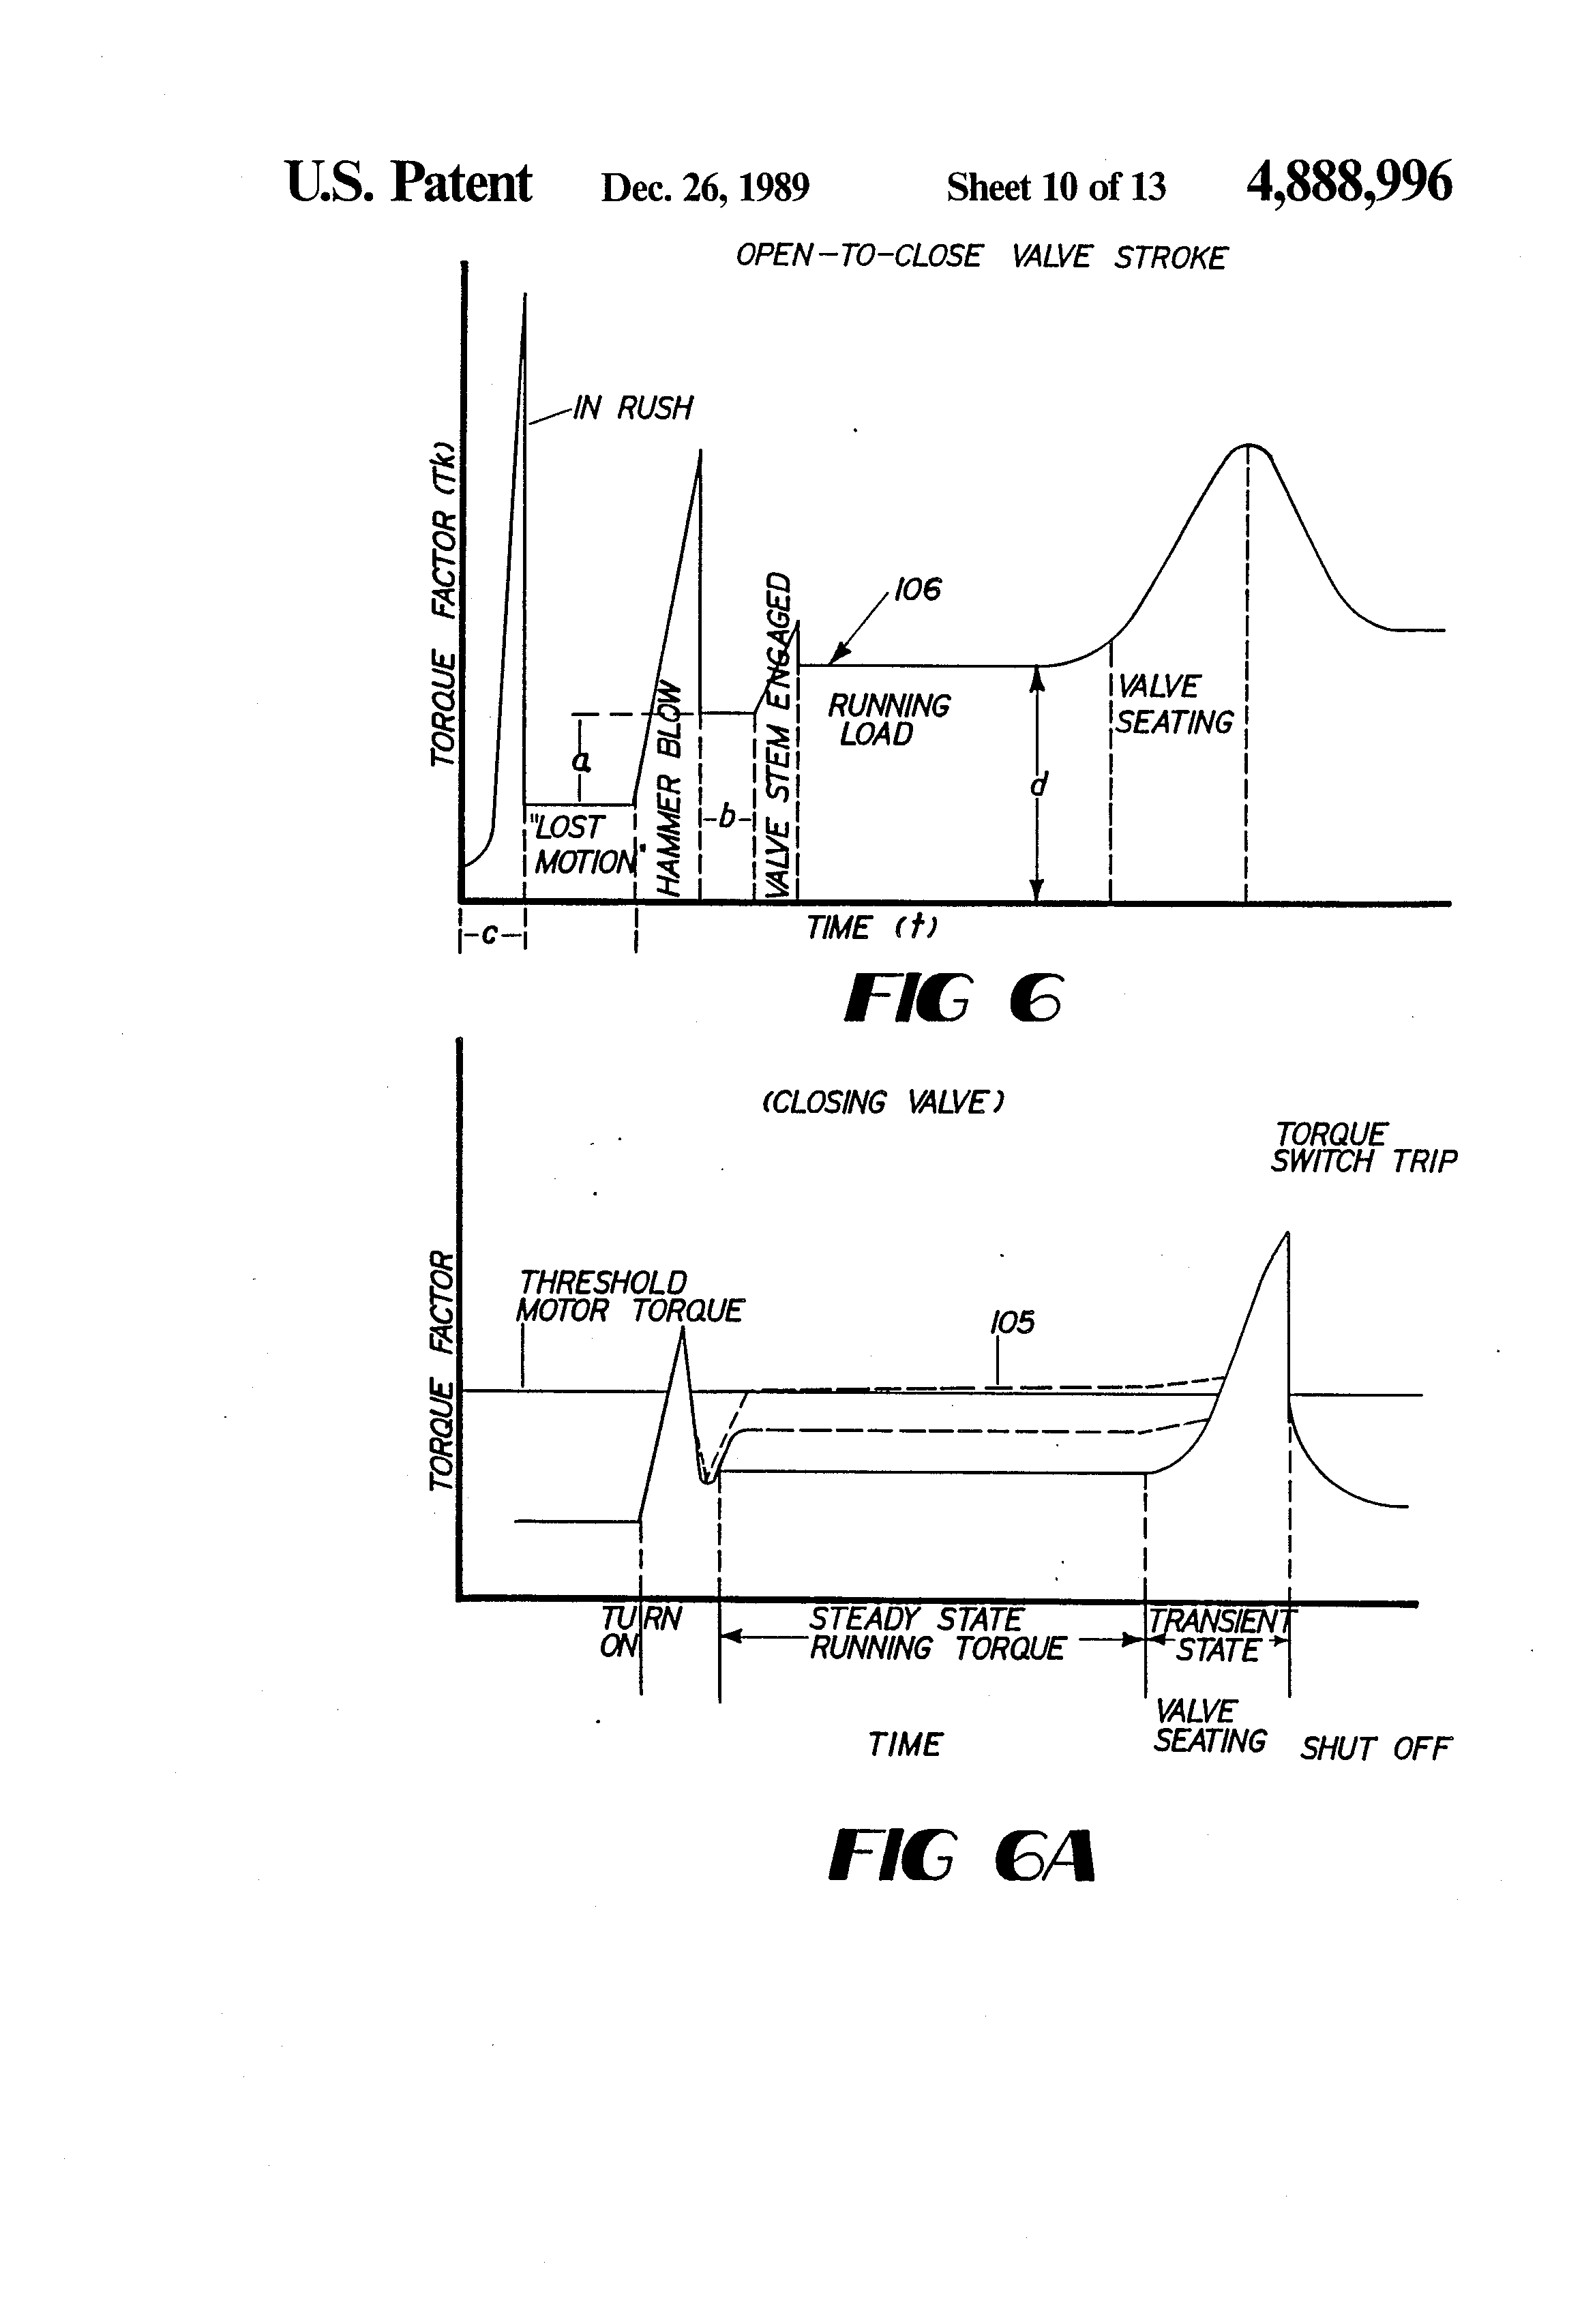 limitorque-l120-wiring-diagram-2 Qx Motor Wiring Diagram on bodine electric, ac blower, dc electric,